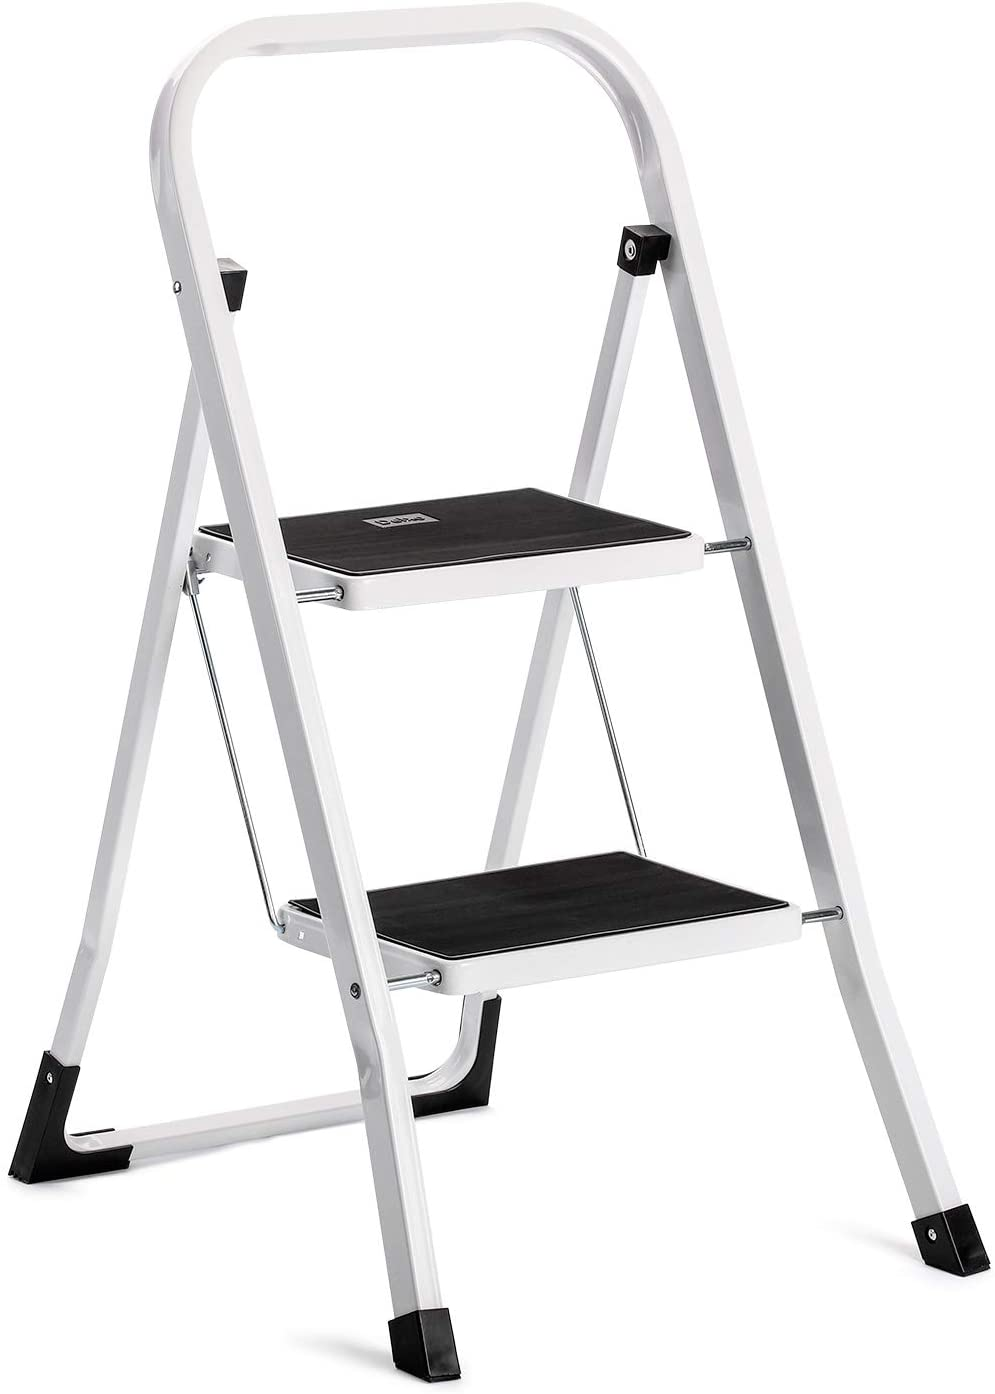 Acko Step Stool-2 Step Step Ladder for Adults with Handgrip and Anti-Slip Wide Pedal.Multi-Use for Household and Office Portable Compact Small Step Ladders Hold up to 300lbs Steel